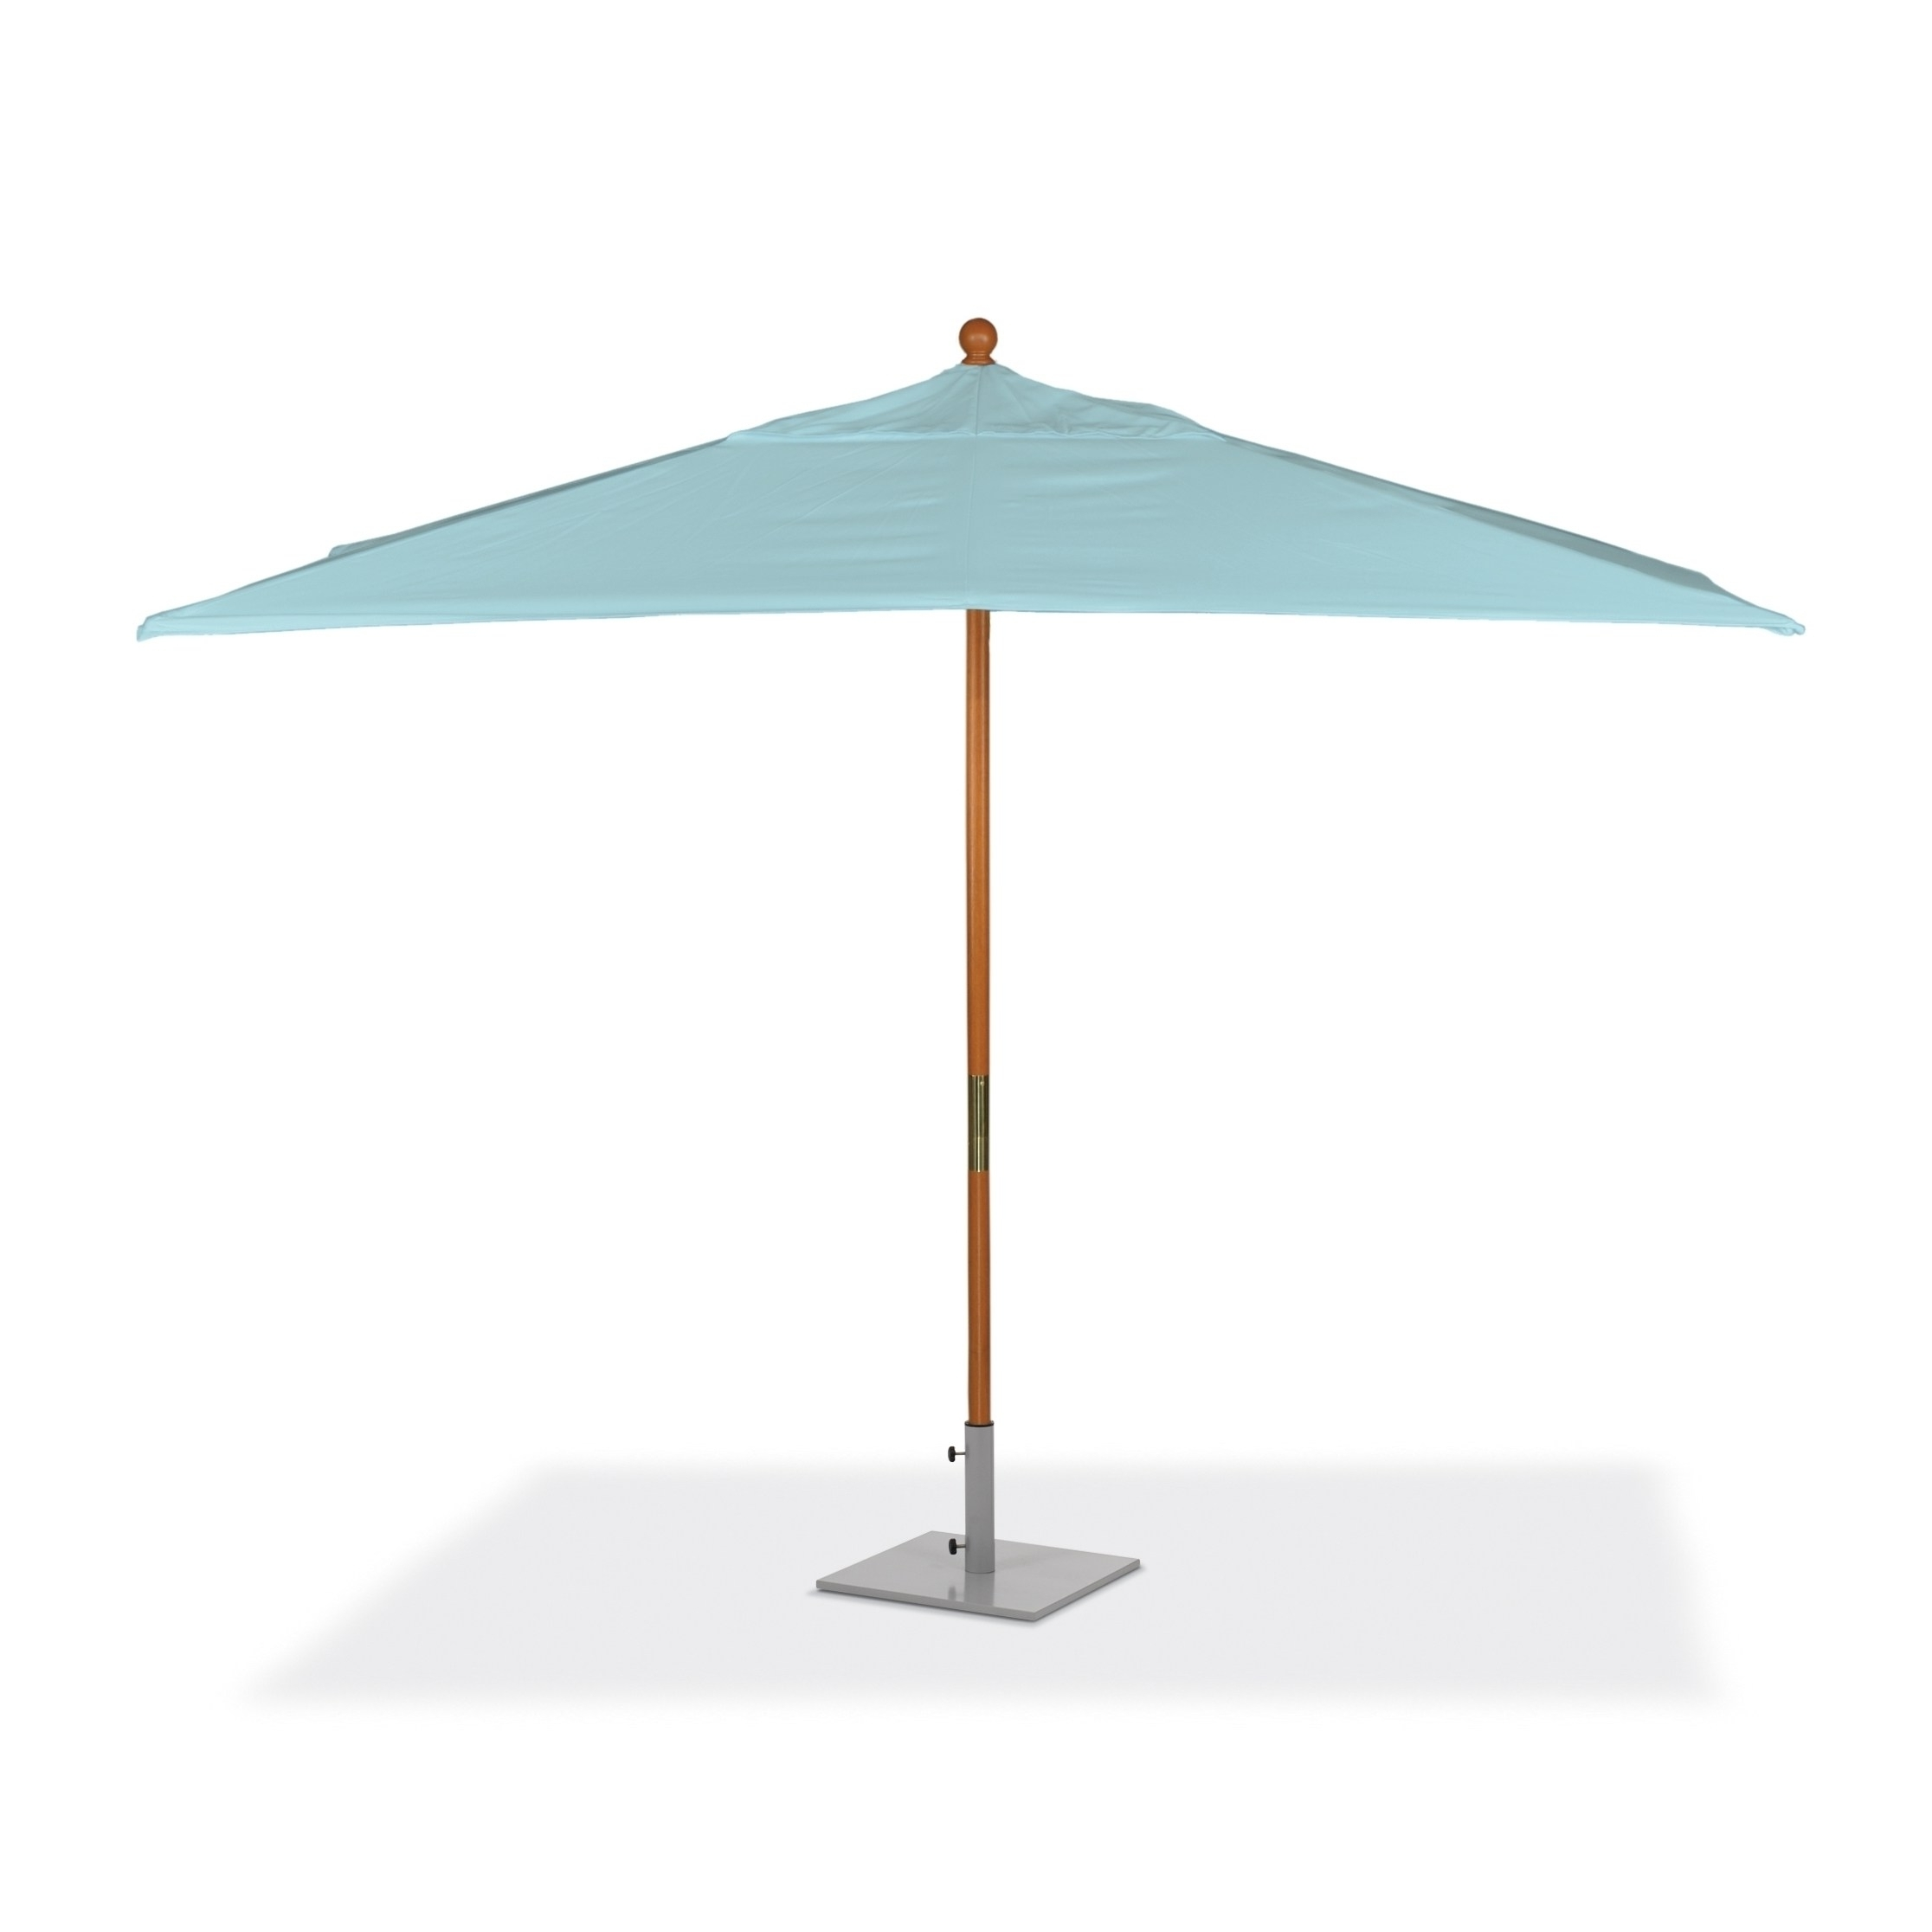 Rectangular Sunbrella Patio Umbrellas Throughout Well Known Shop Oxford Garden 10 Feet Rectangular Mineral Blue Sunbrella Fabric (View 17 of 20)